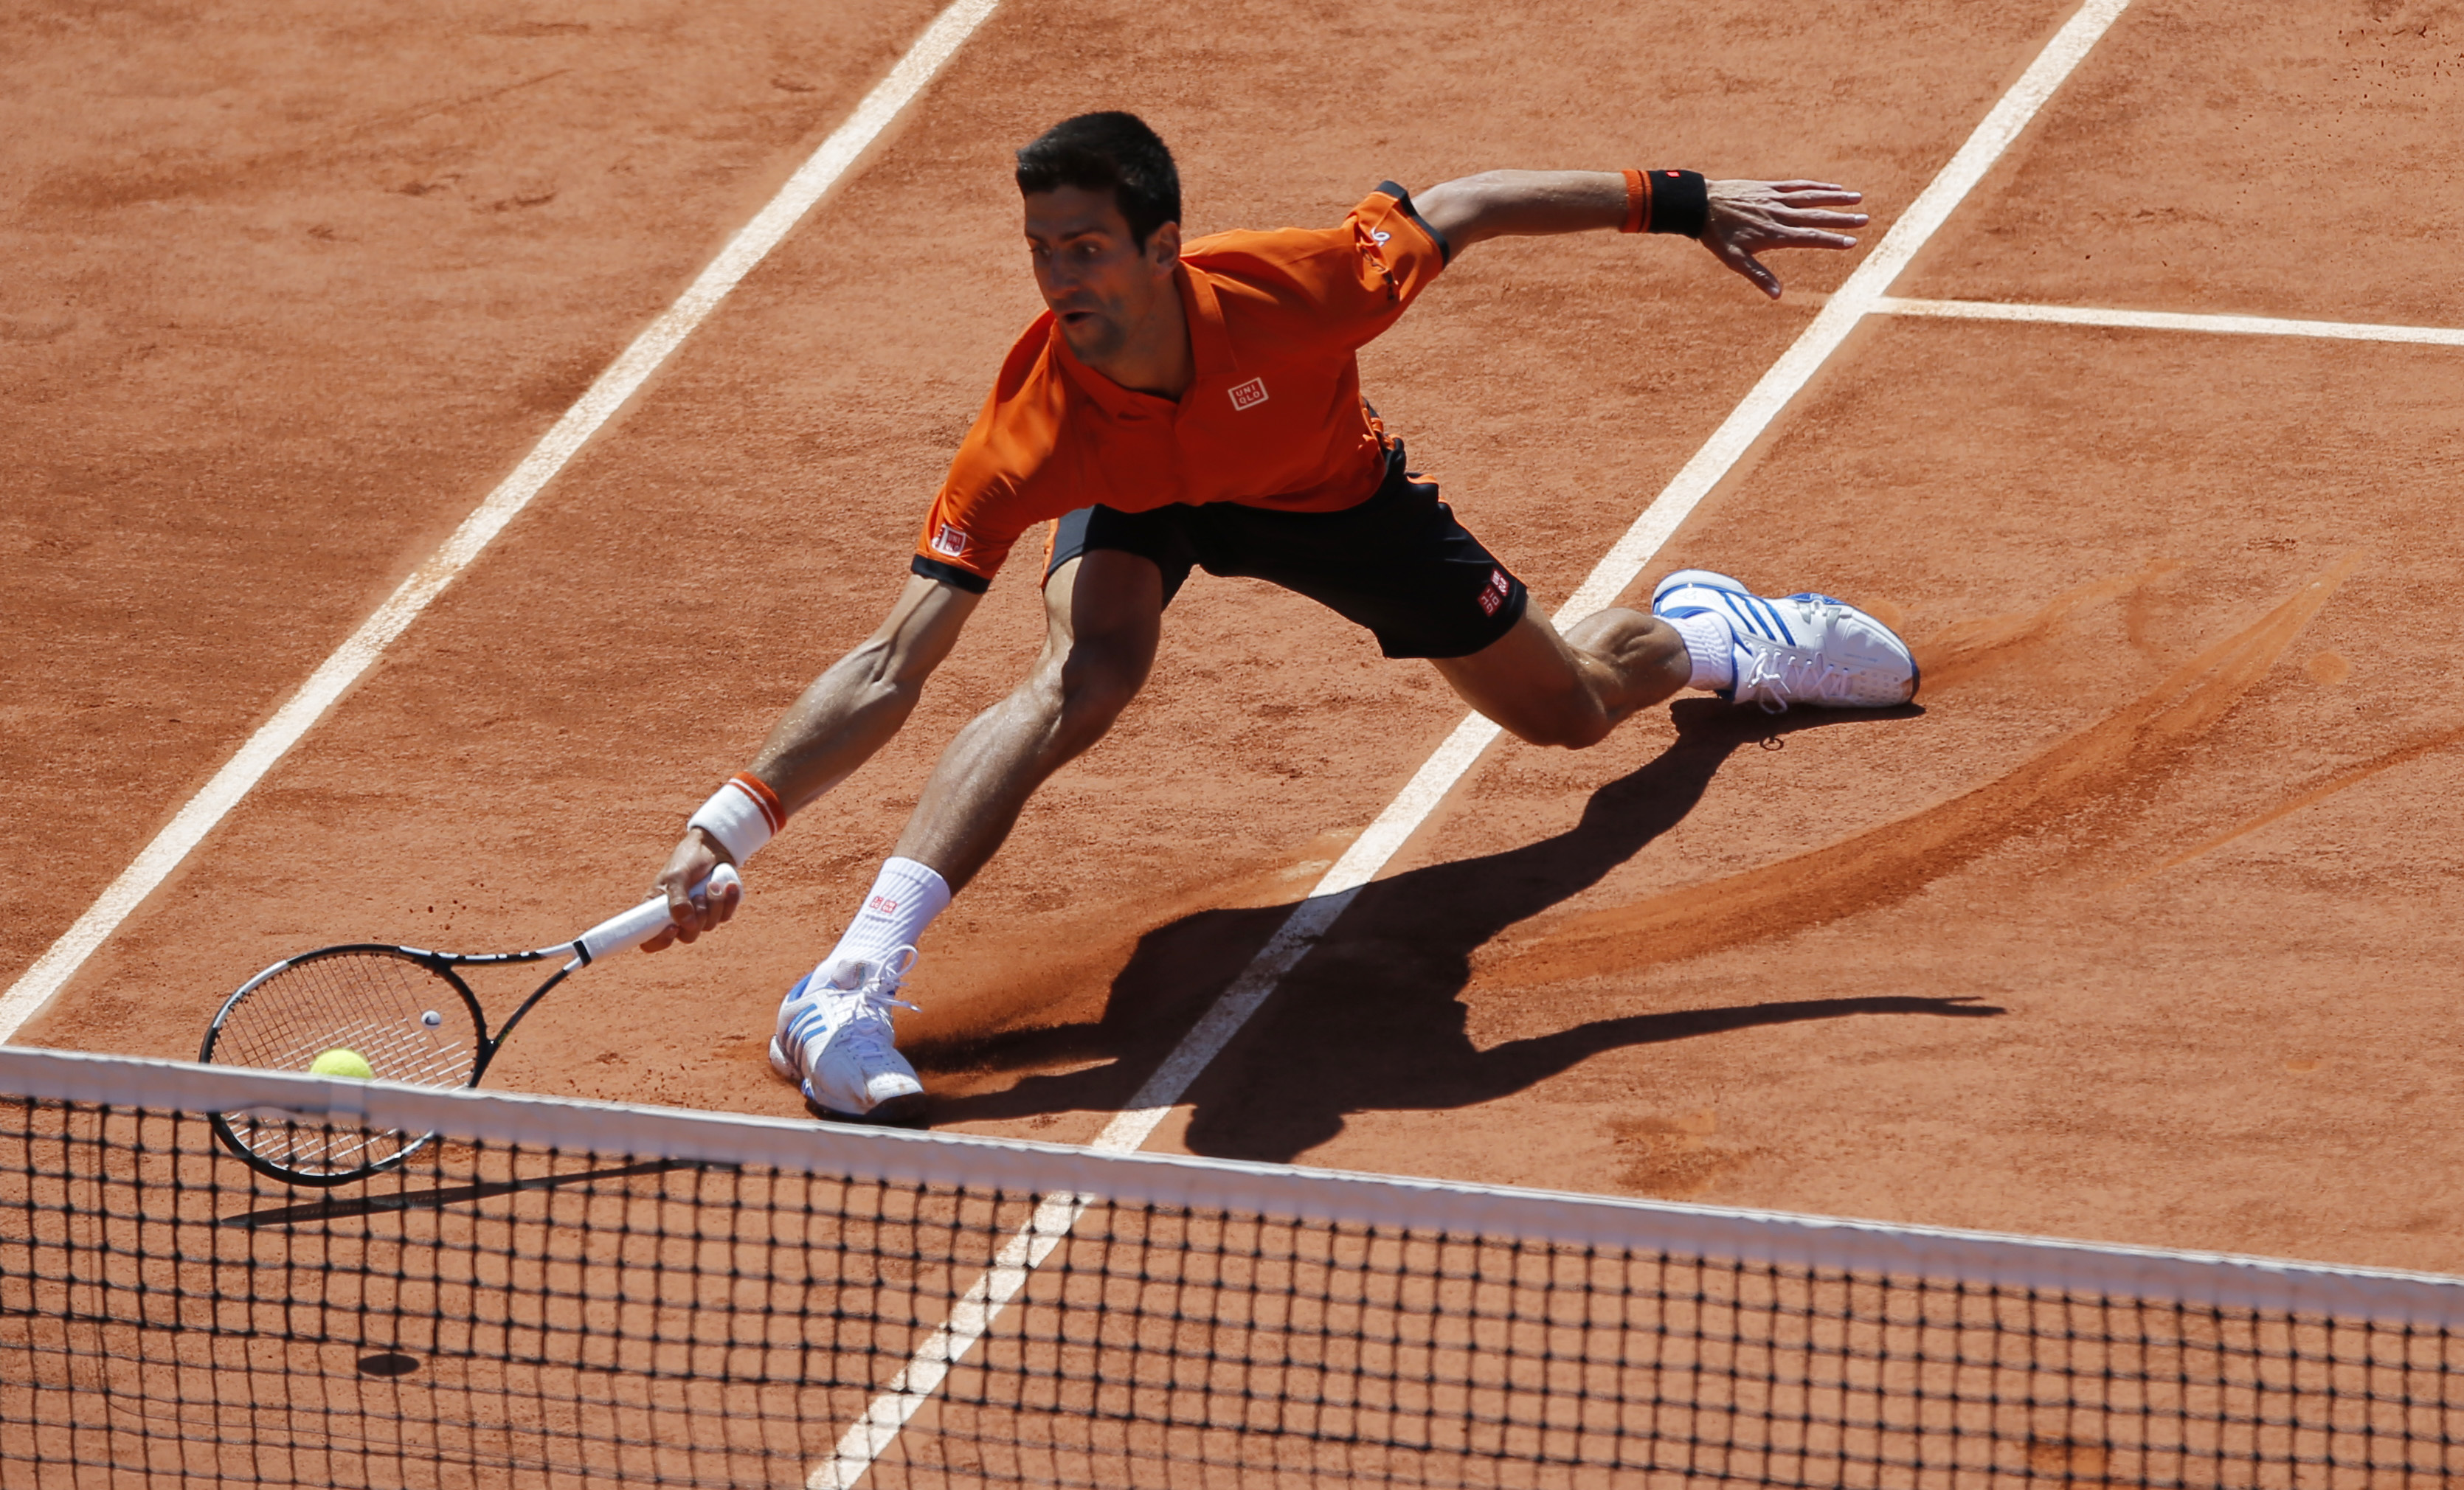 Serbia's Novak Djokovic returns the ball to Britain's Andy Murray during their semifinal match of the French Open tennis tournament at the Roland Garros stadium, Saturday, June 6, 2015 in Paris, France. (AP Photo/Francois Mori)